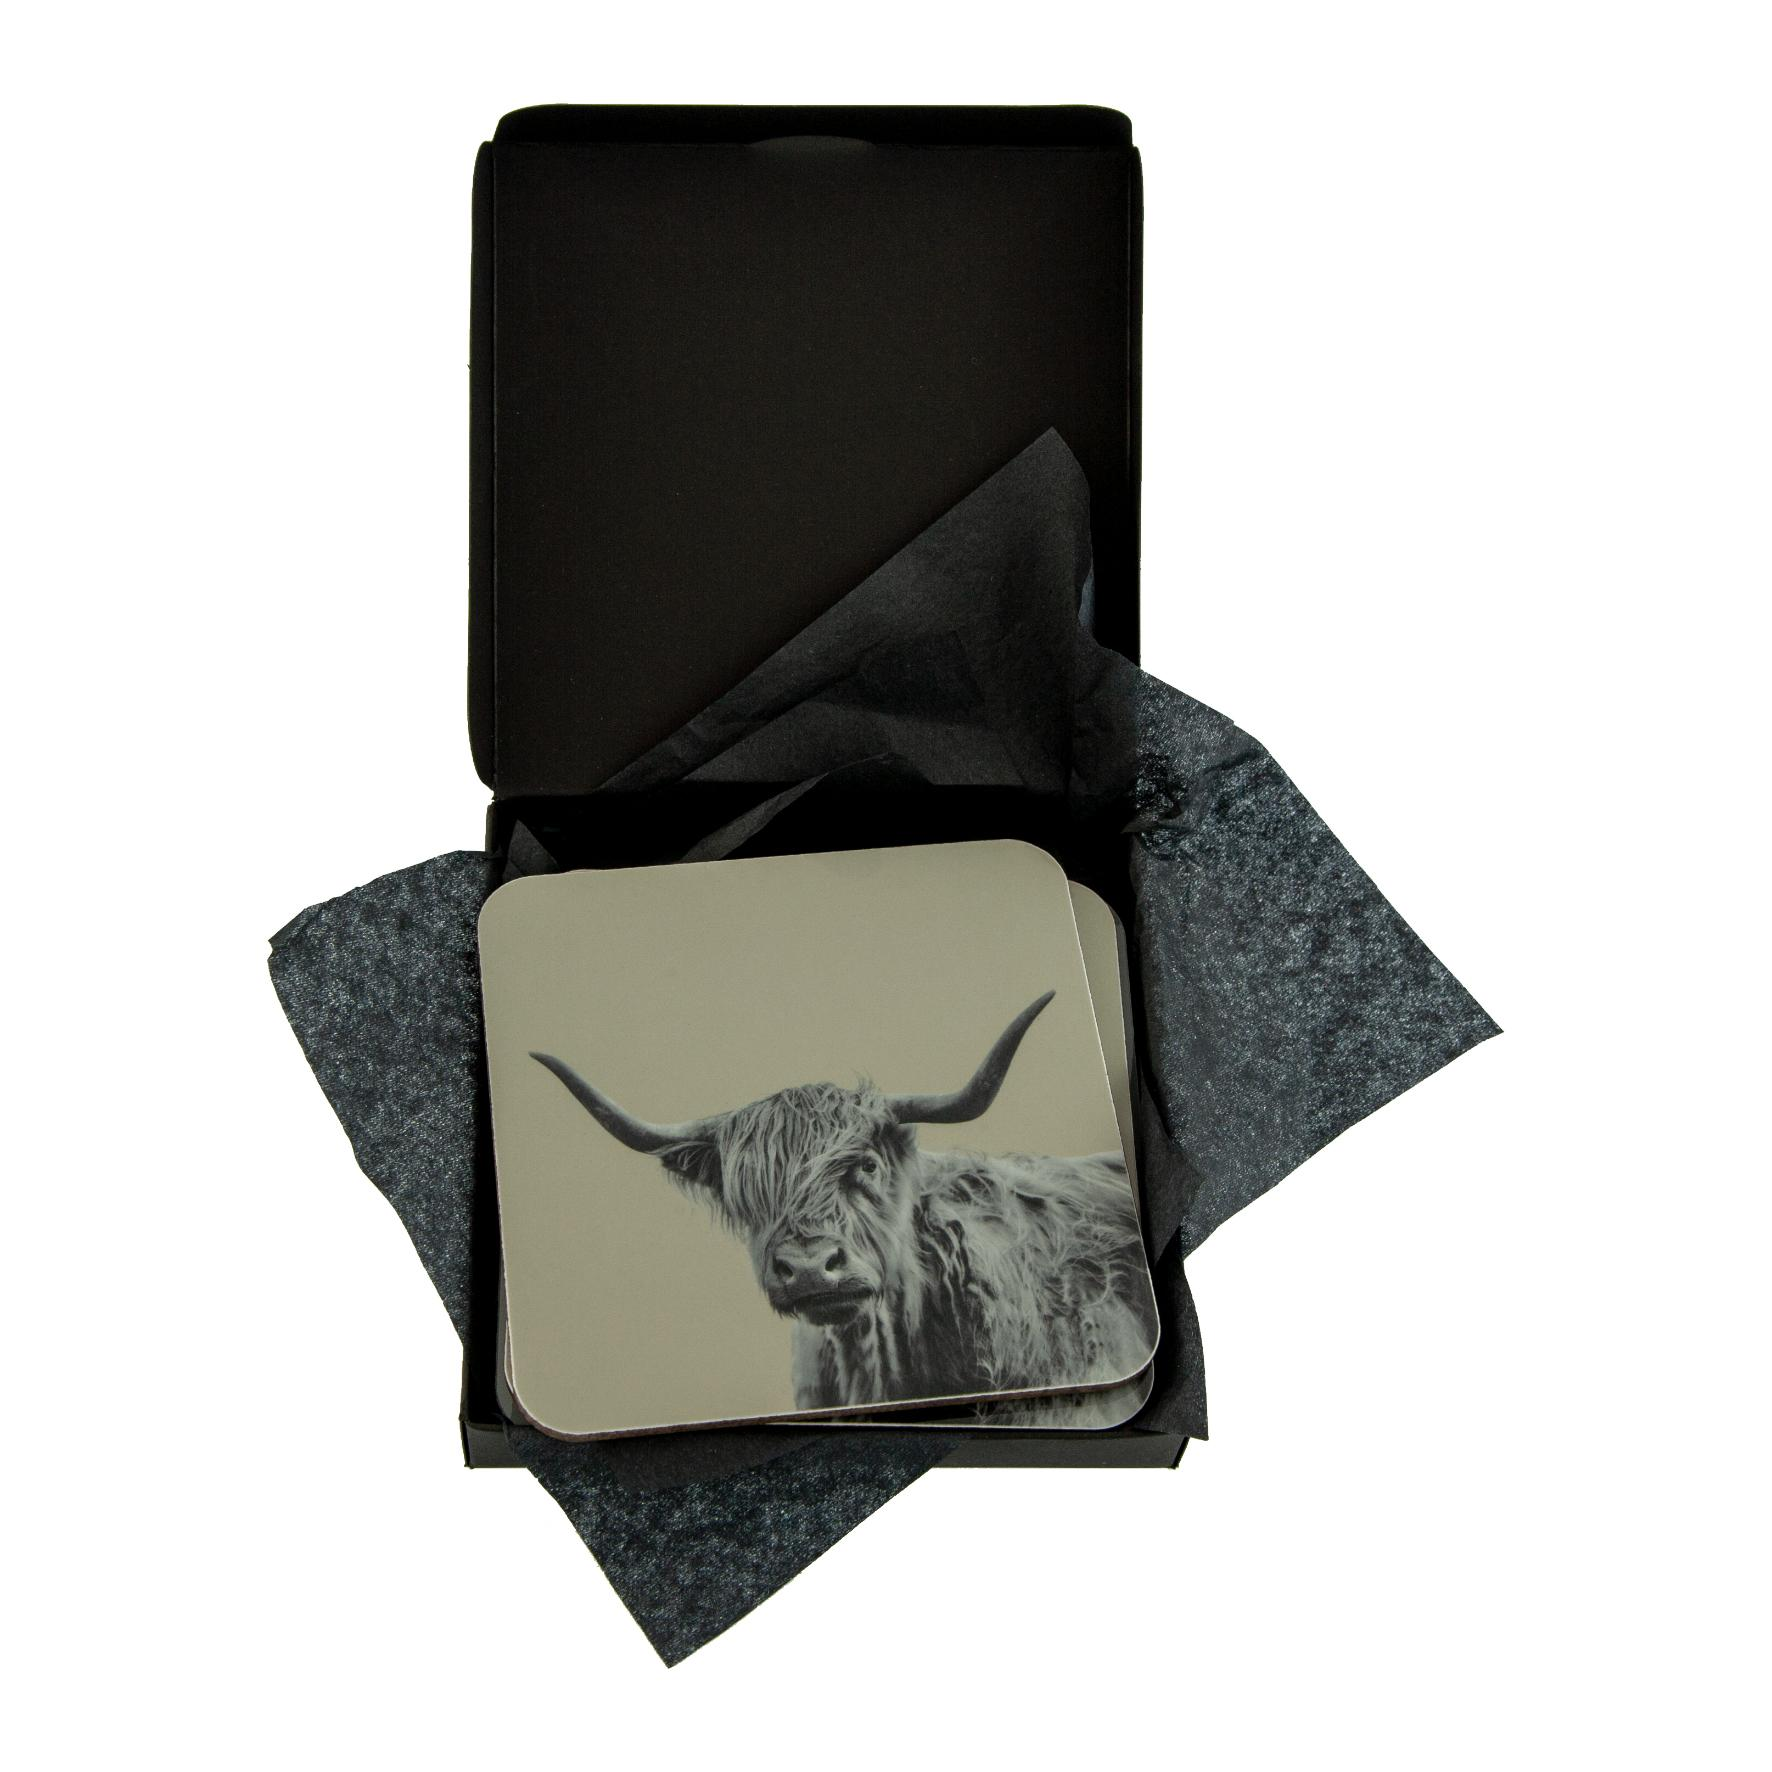 Shaggy Highland Cow Coaster on Sand Grey